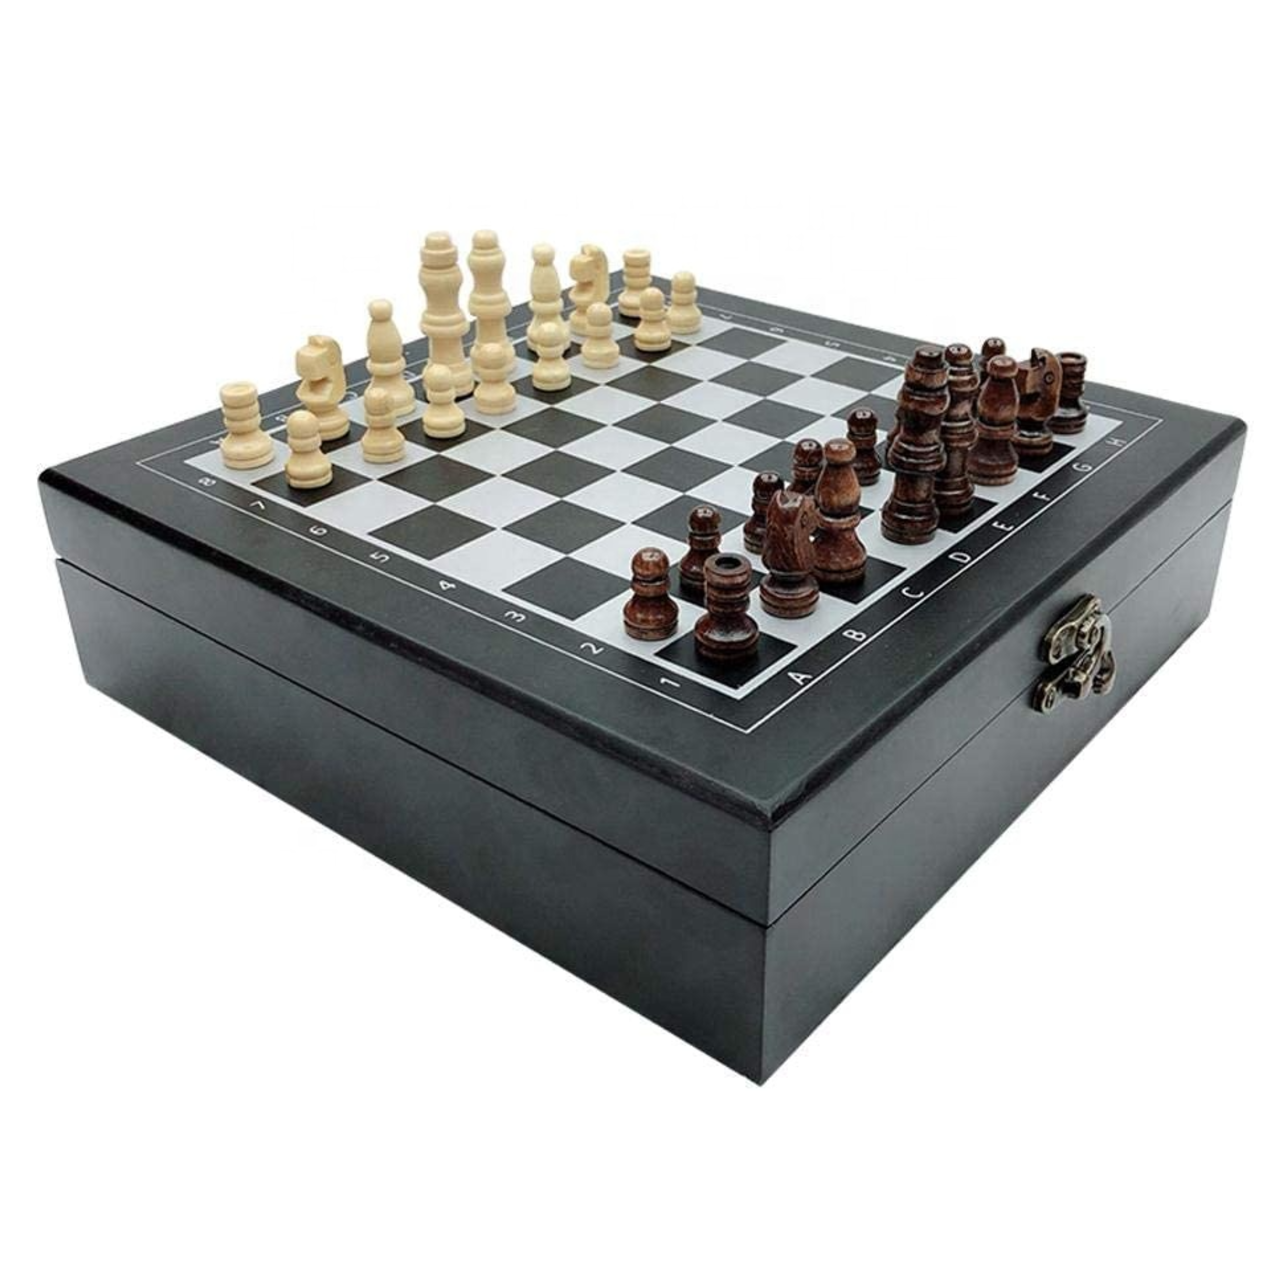 4 in 1 Wooden Chess Set, Cards, Dice and Dominoes with Folding Carry Case (CH20)